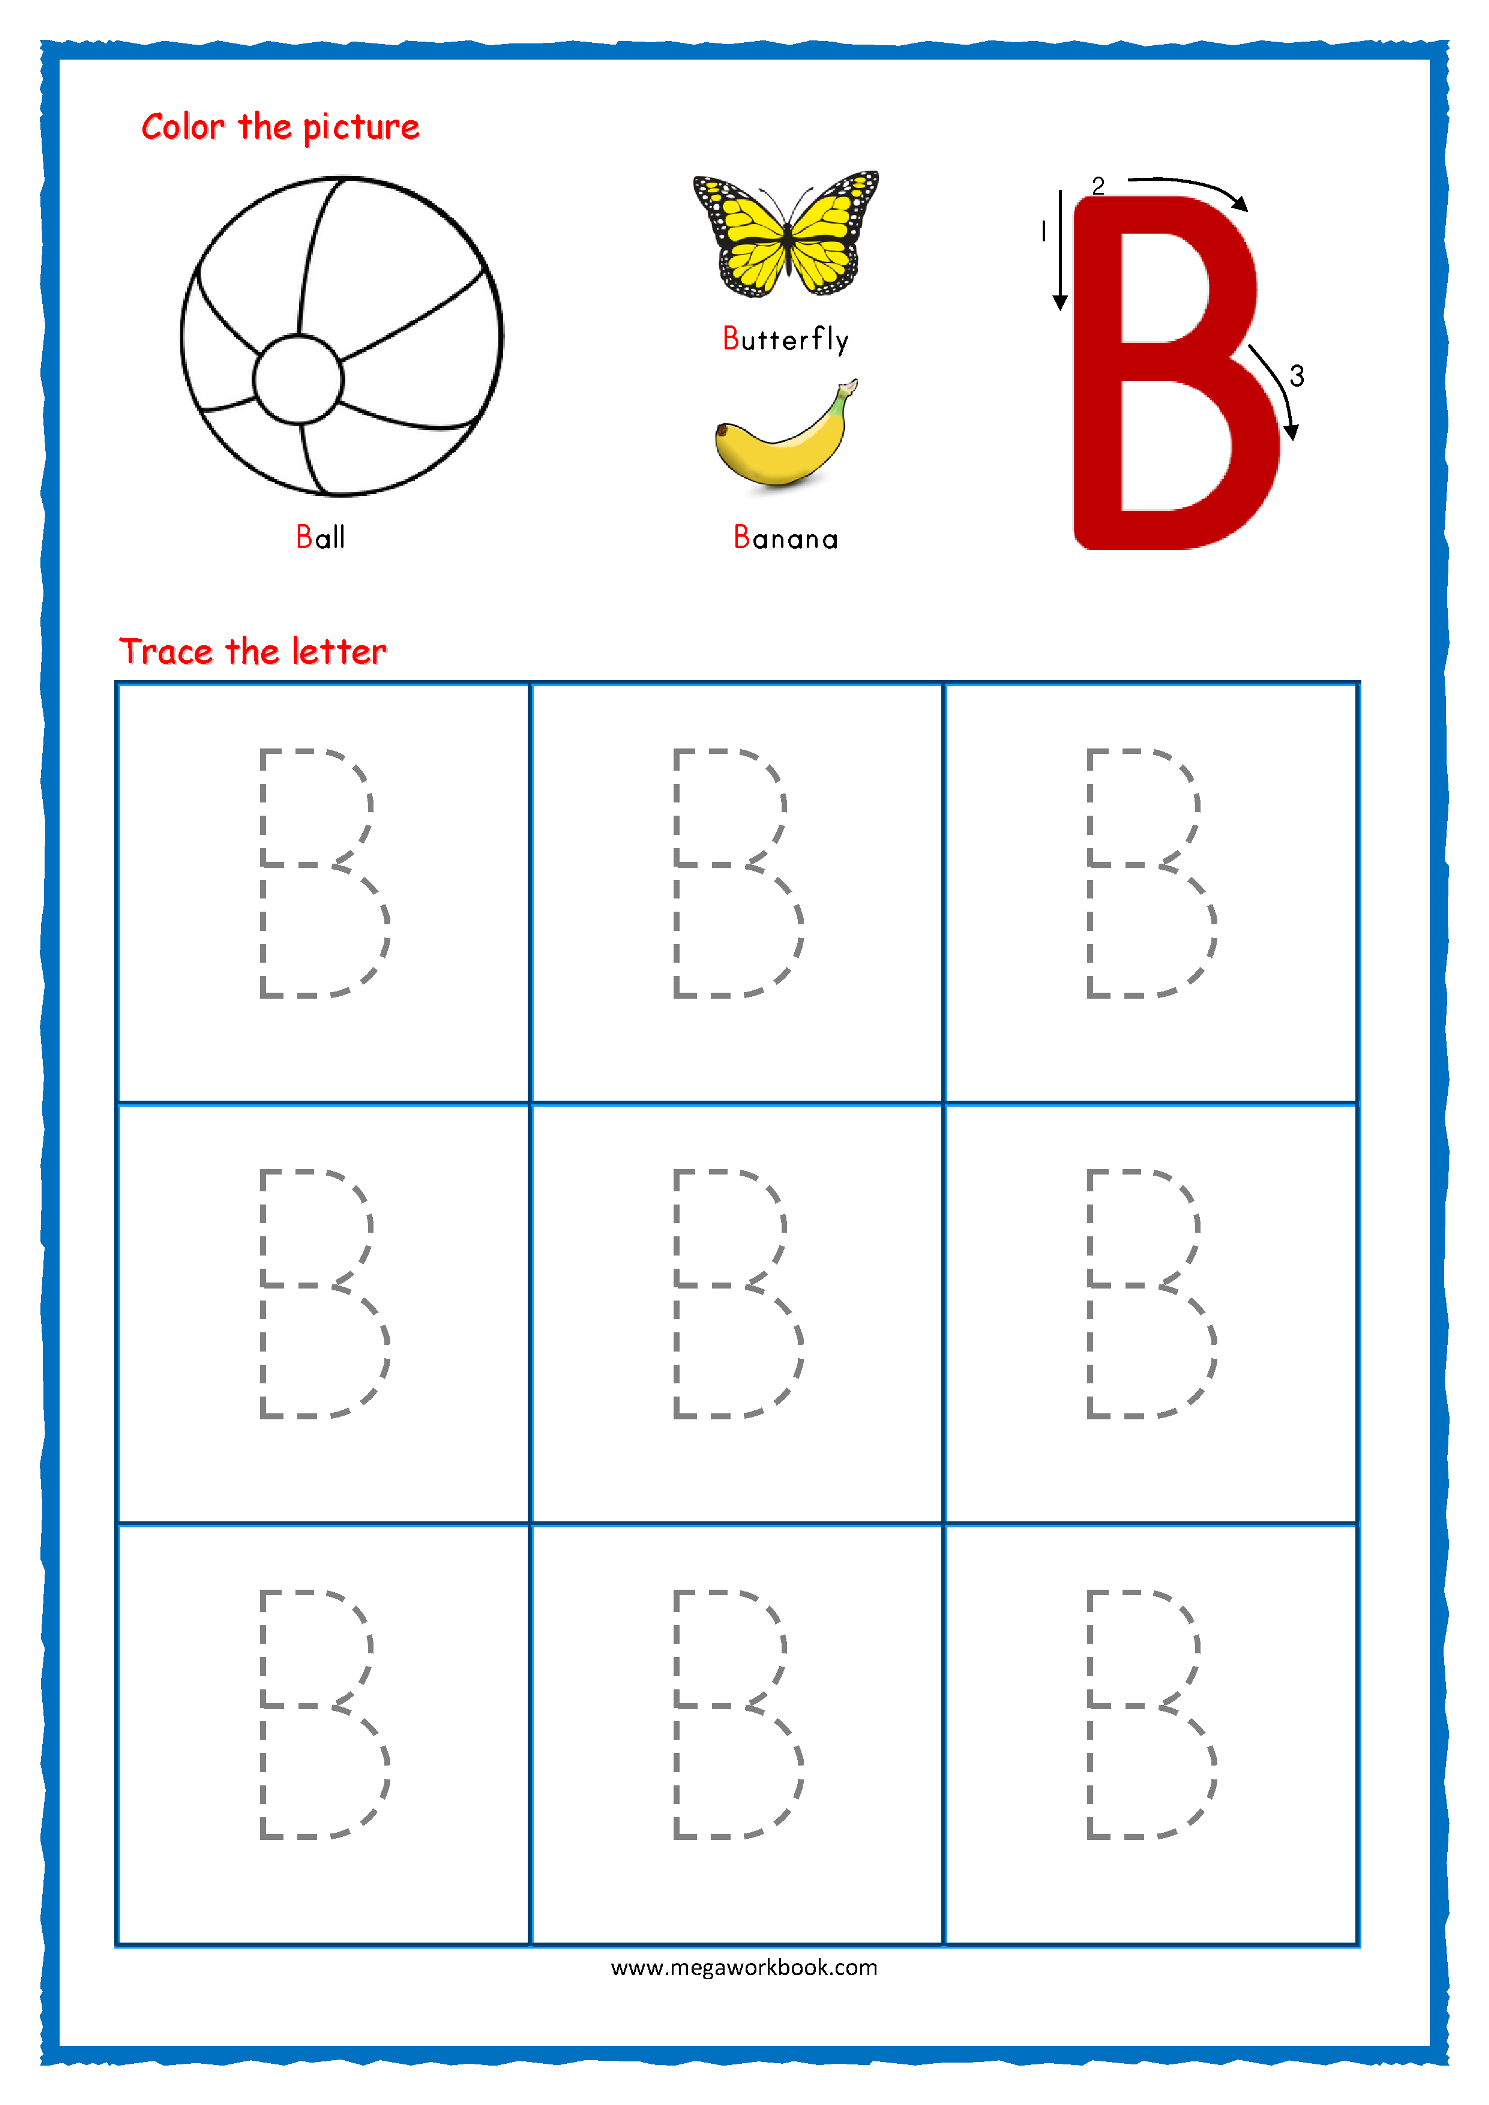 Tracing Letters - Alphabet Tracing - Capital Letters with Tracing Letters For Toddlers Printable